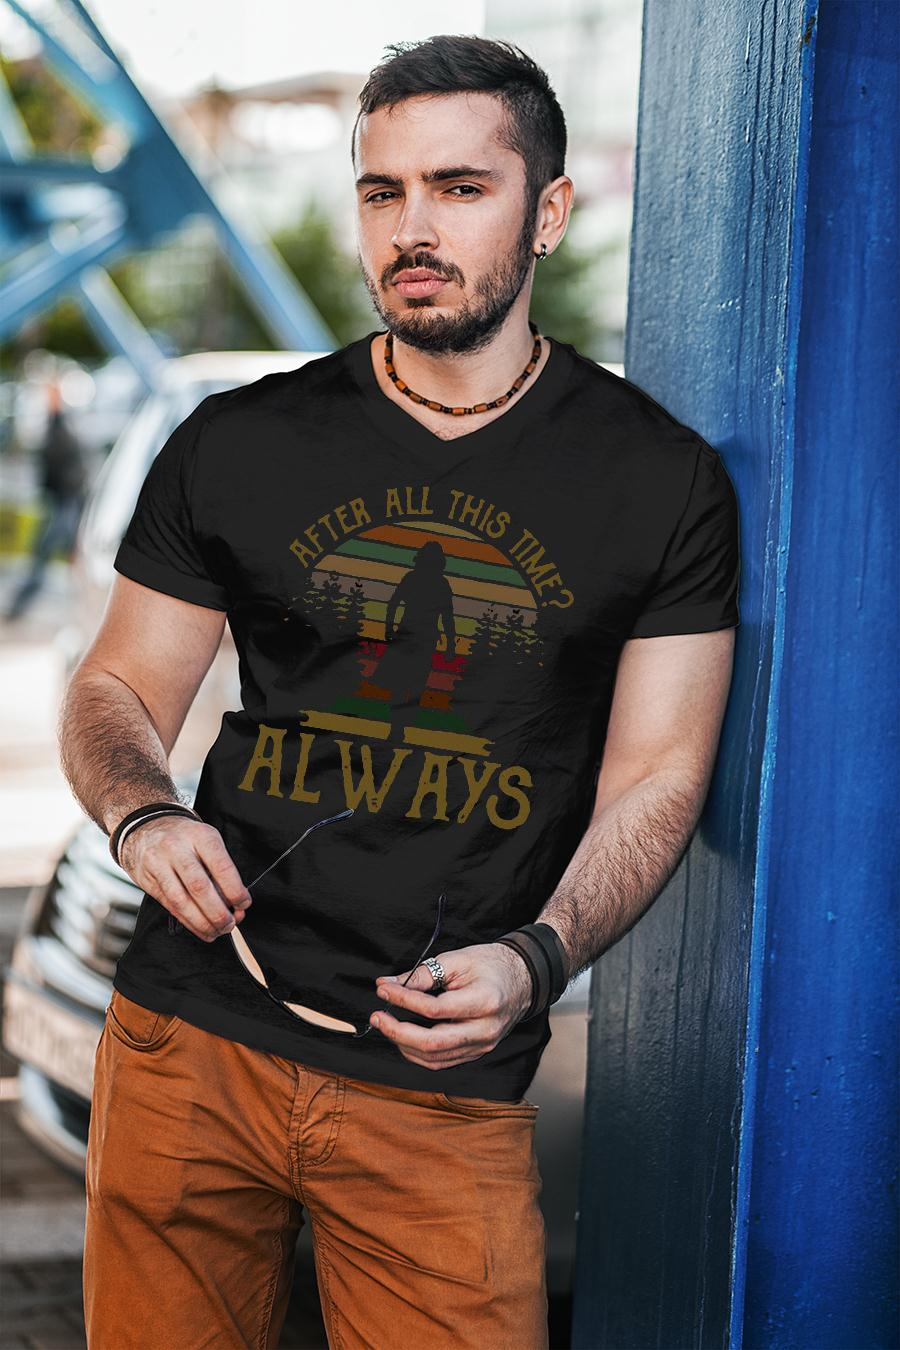 After all this time always retro vintage shirt unisex